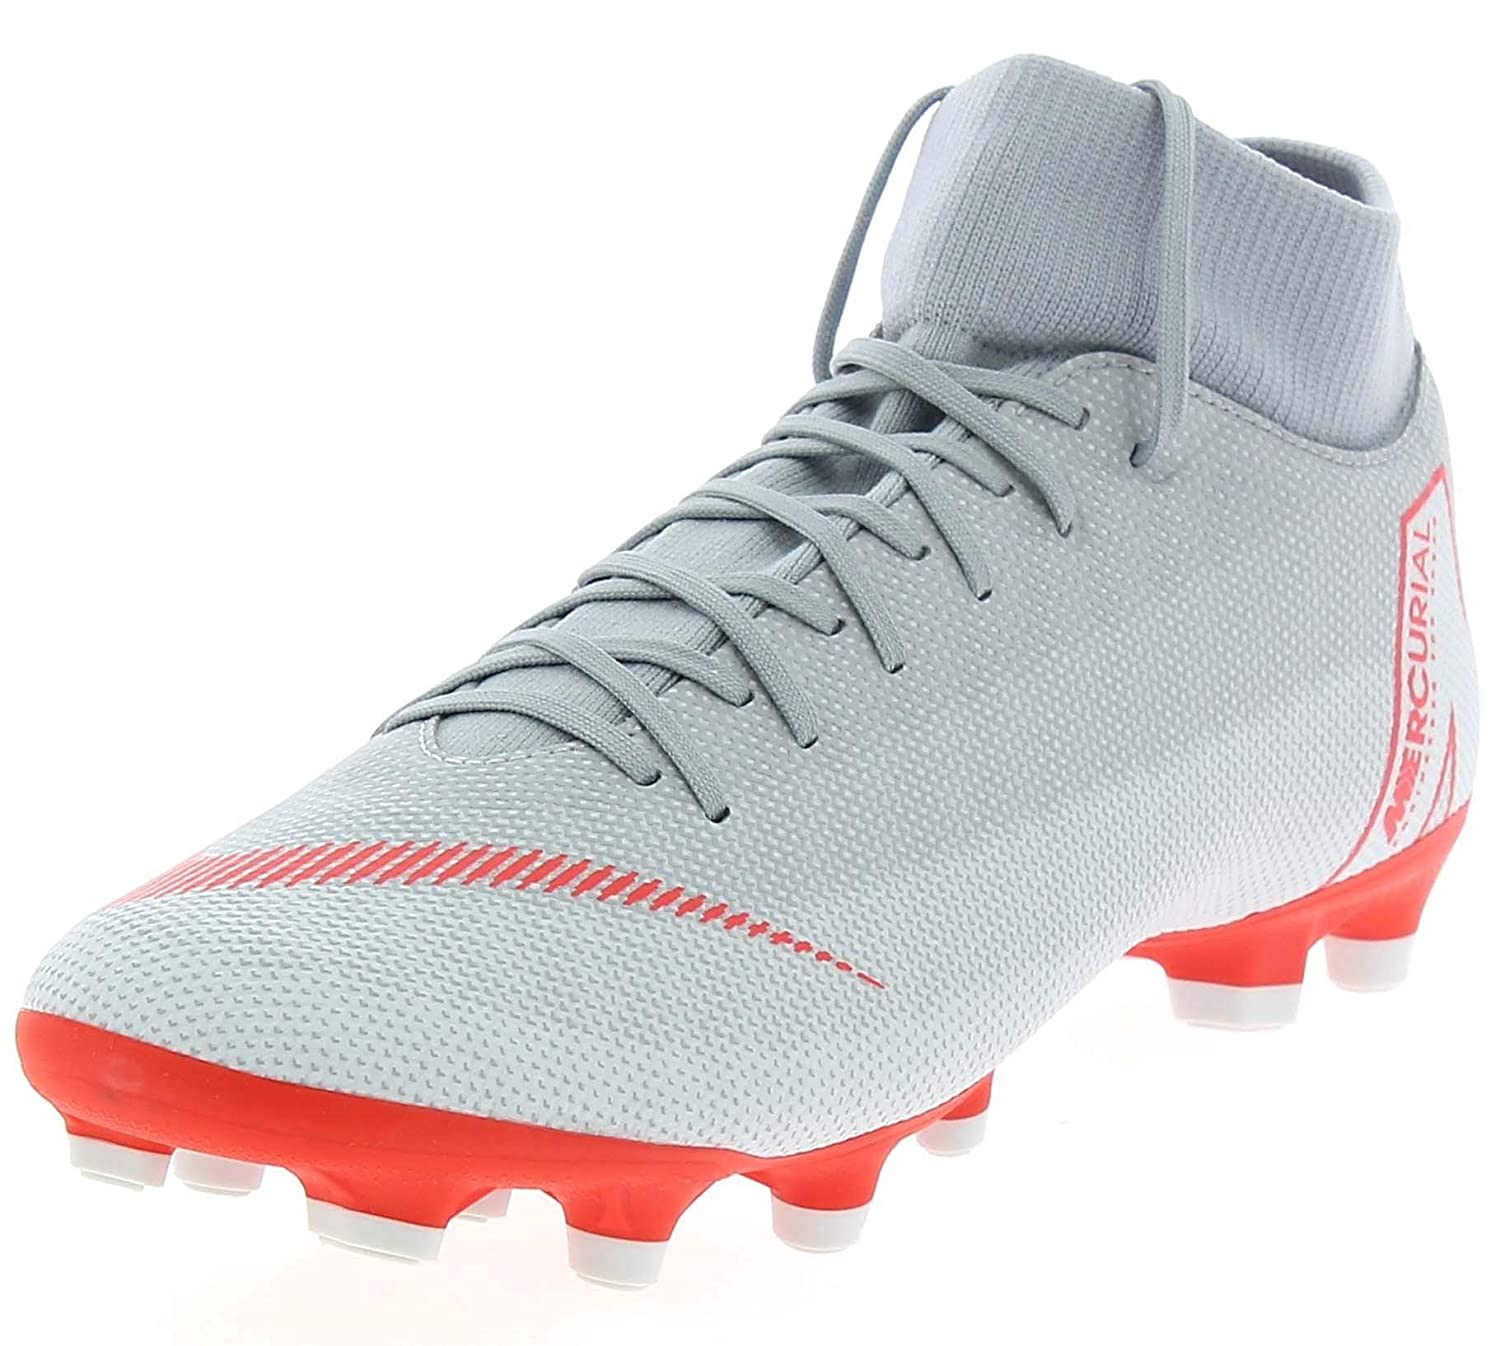 Nike Superfly 6 Academy Fg Mg Sneaker